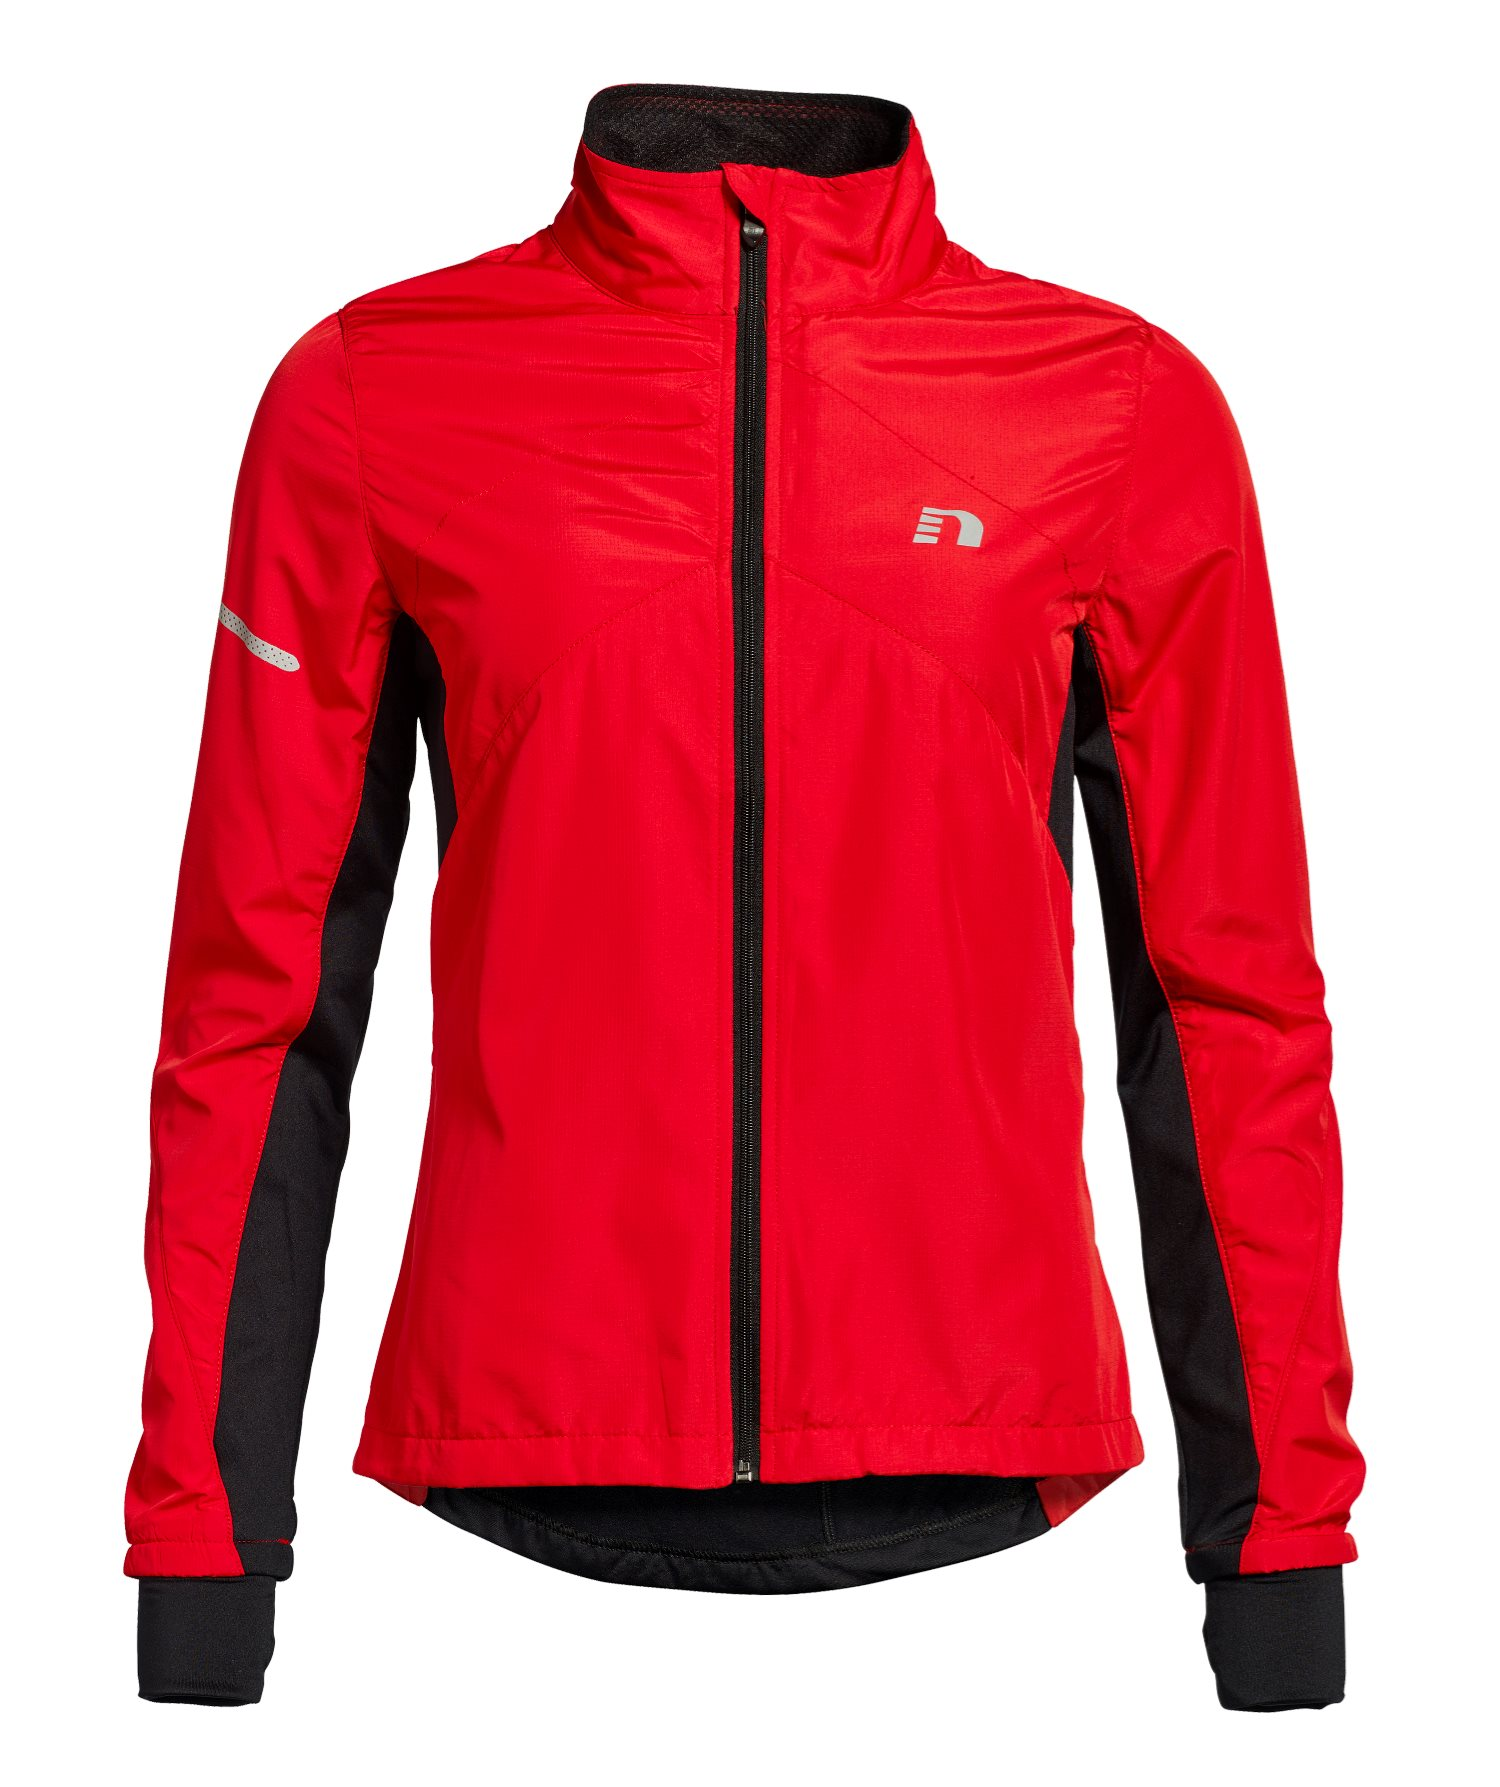 Newline Base Cross Jacket - Damen